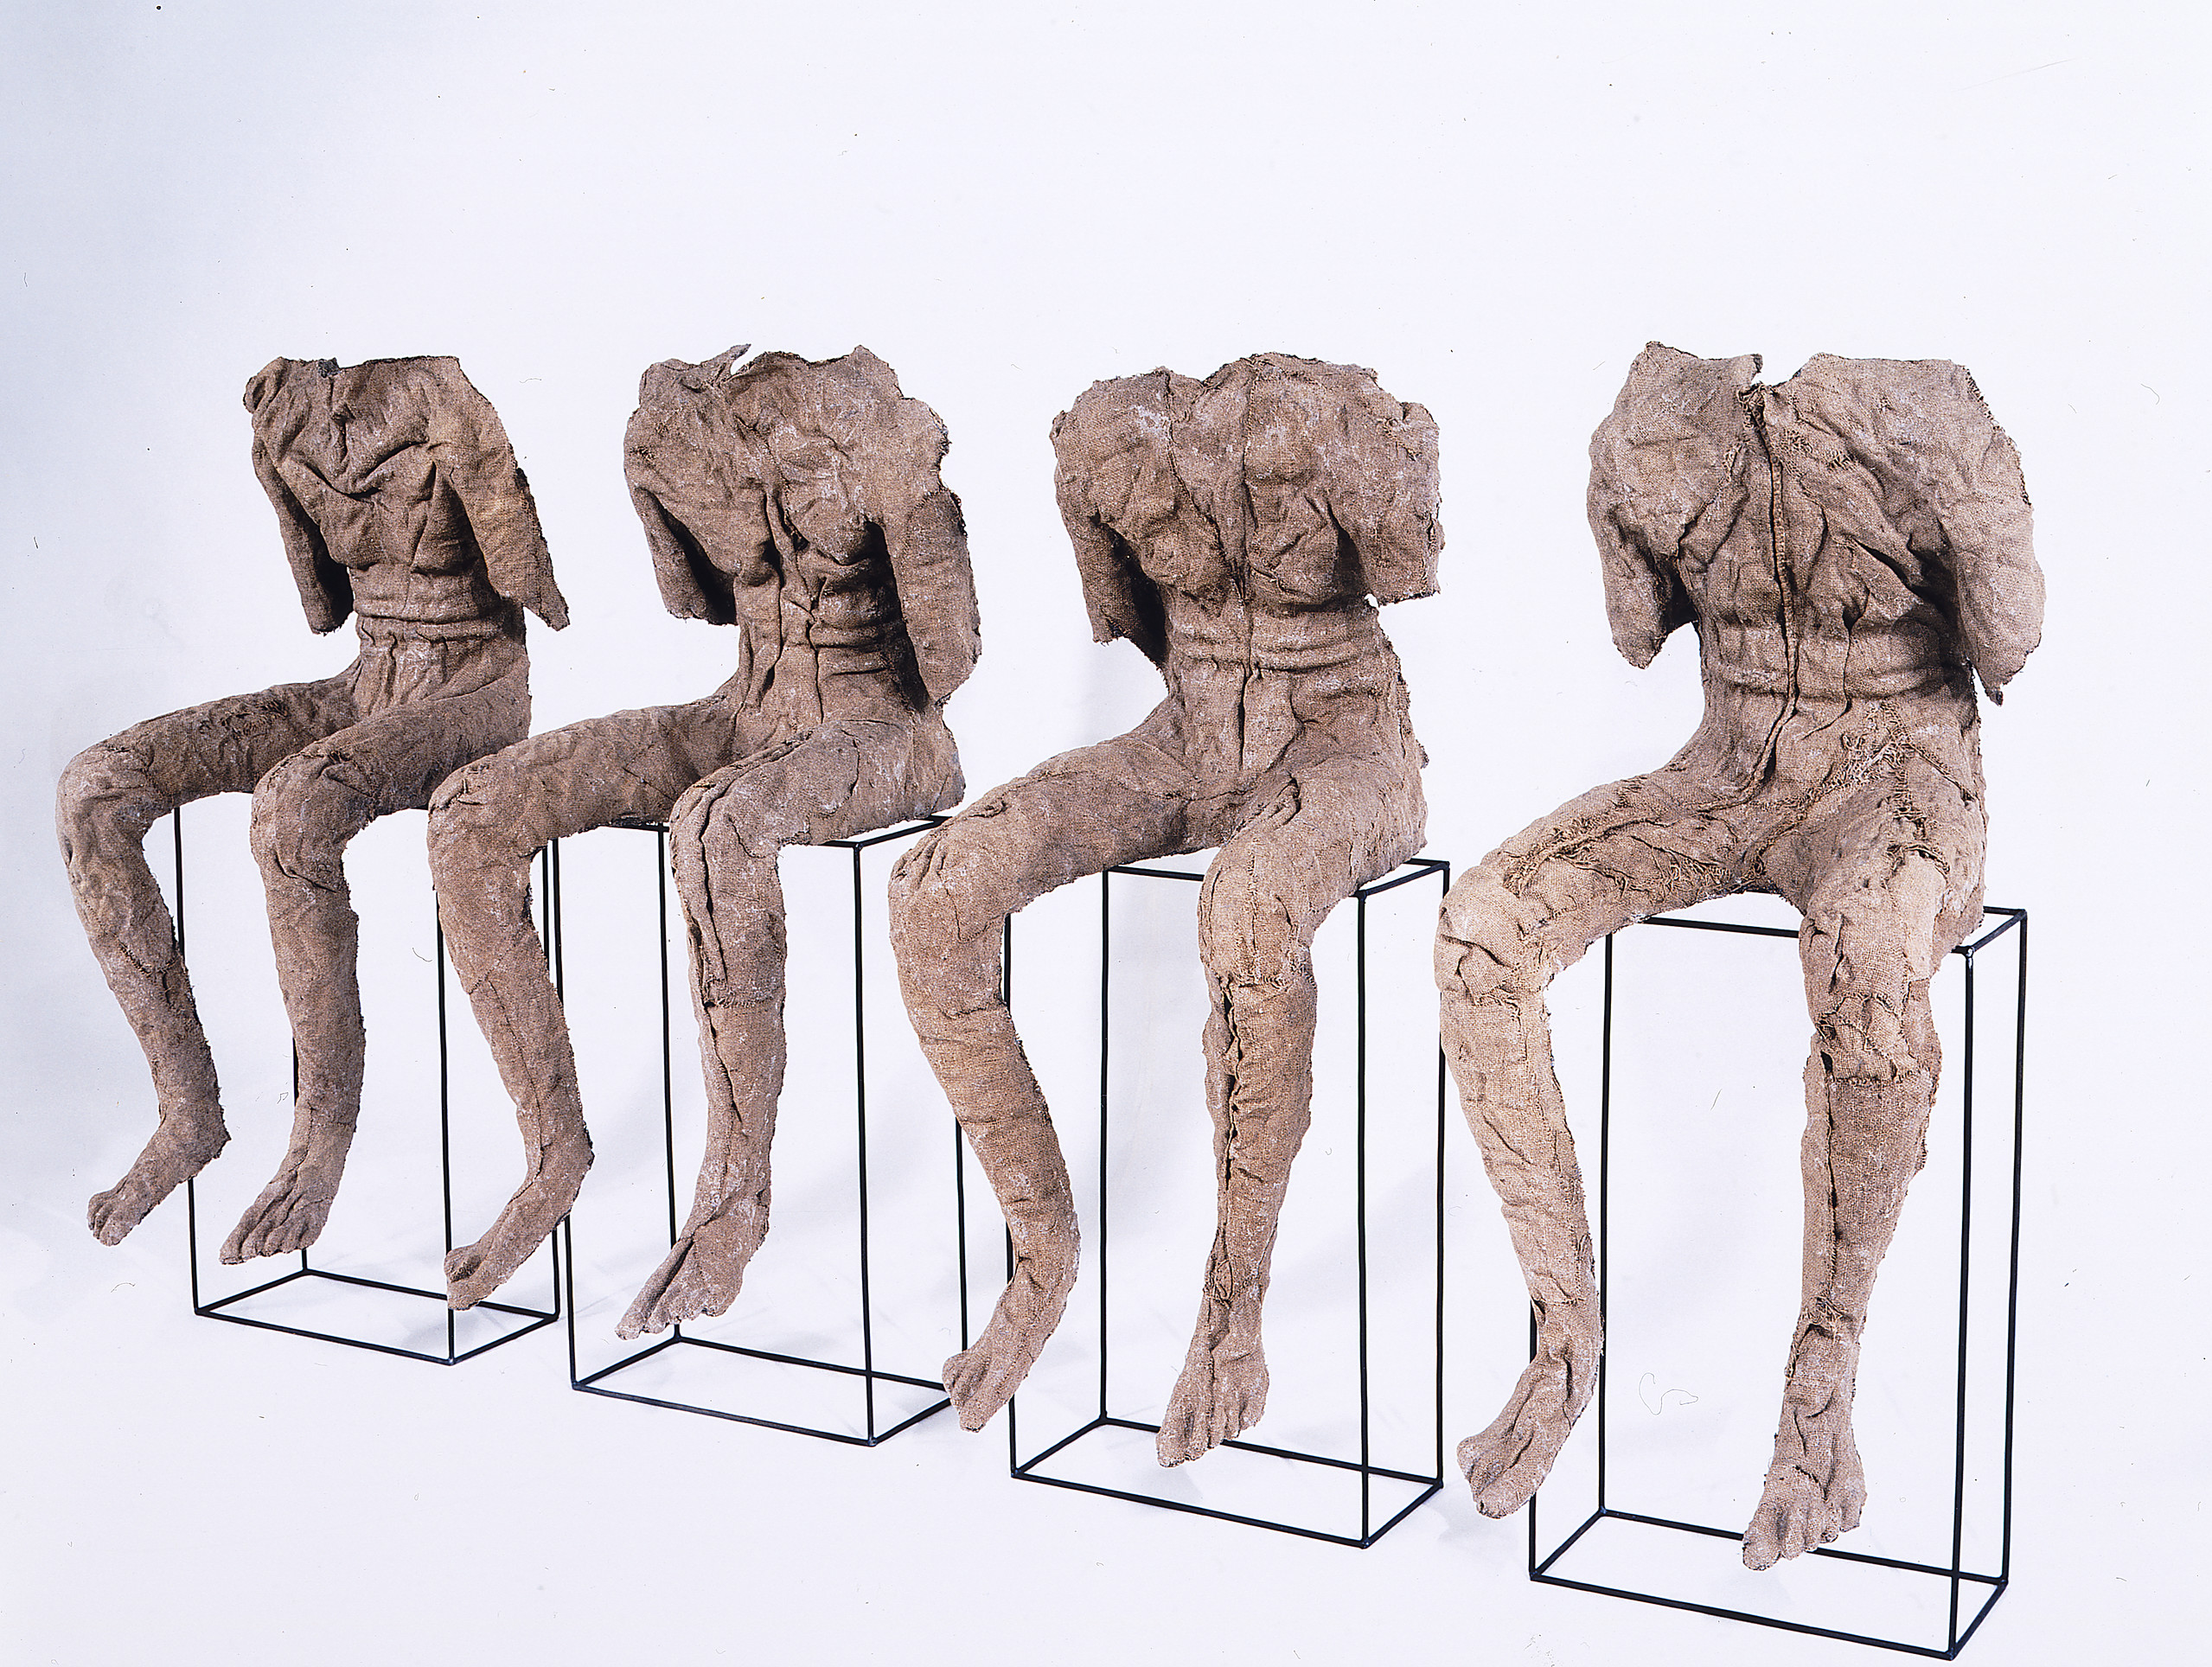 Four androgynous figures rendered in stiffened, brown burlap sit atop vertical, rectangular metal frames. They lack necks, heads, lower arms, and clothing, and their upper torsos slump slightly forward. The burlap's color and bumpy texture evoke bark and mummy wrappings.